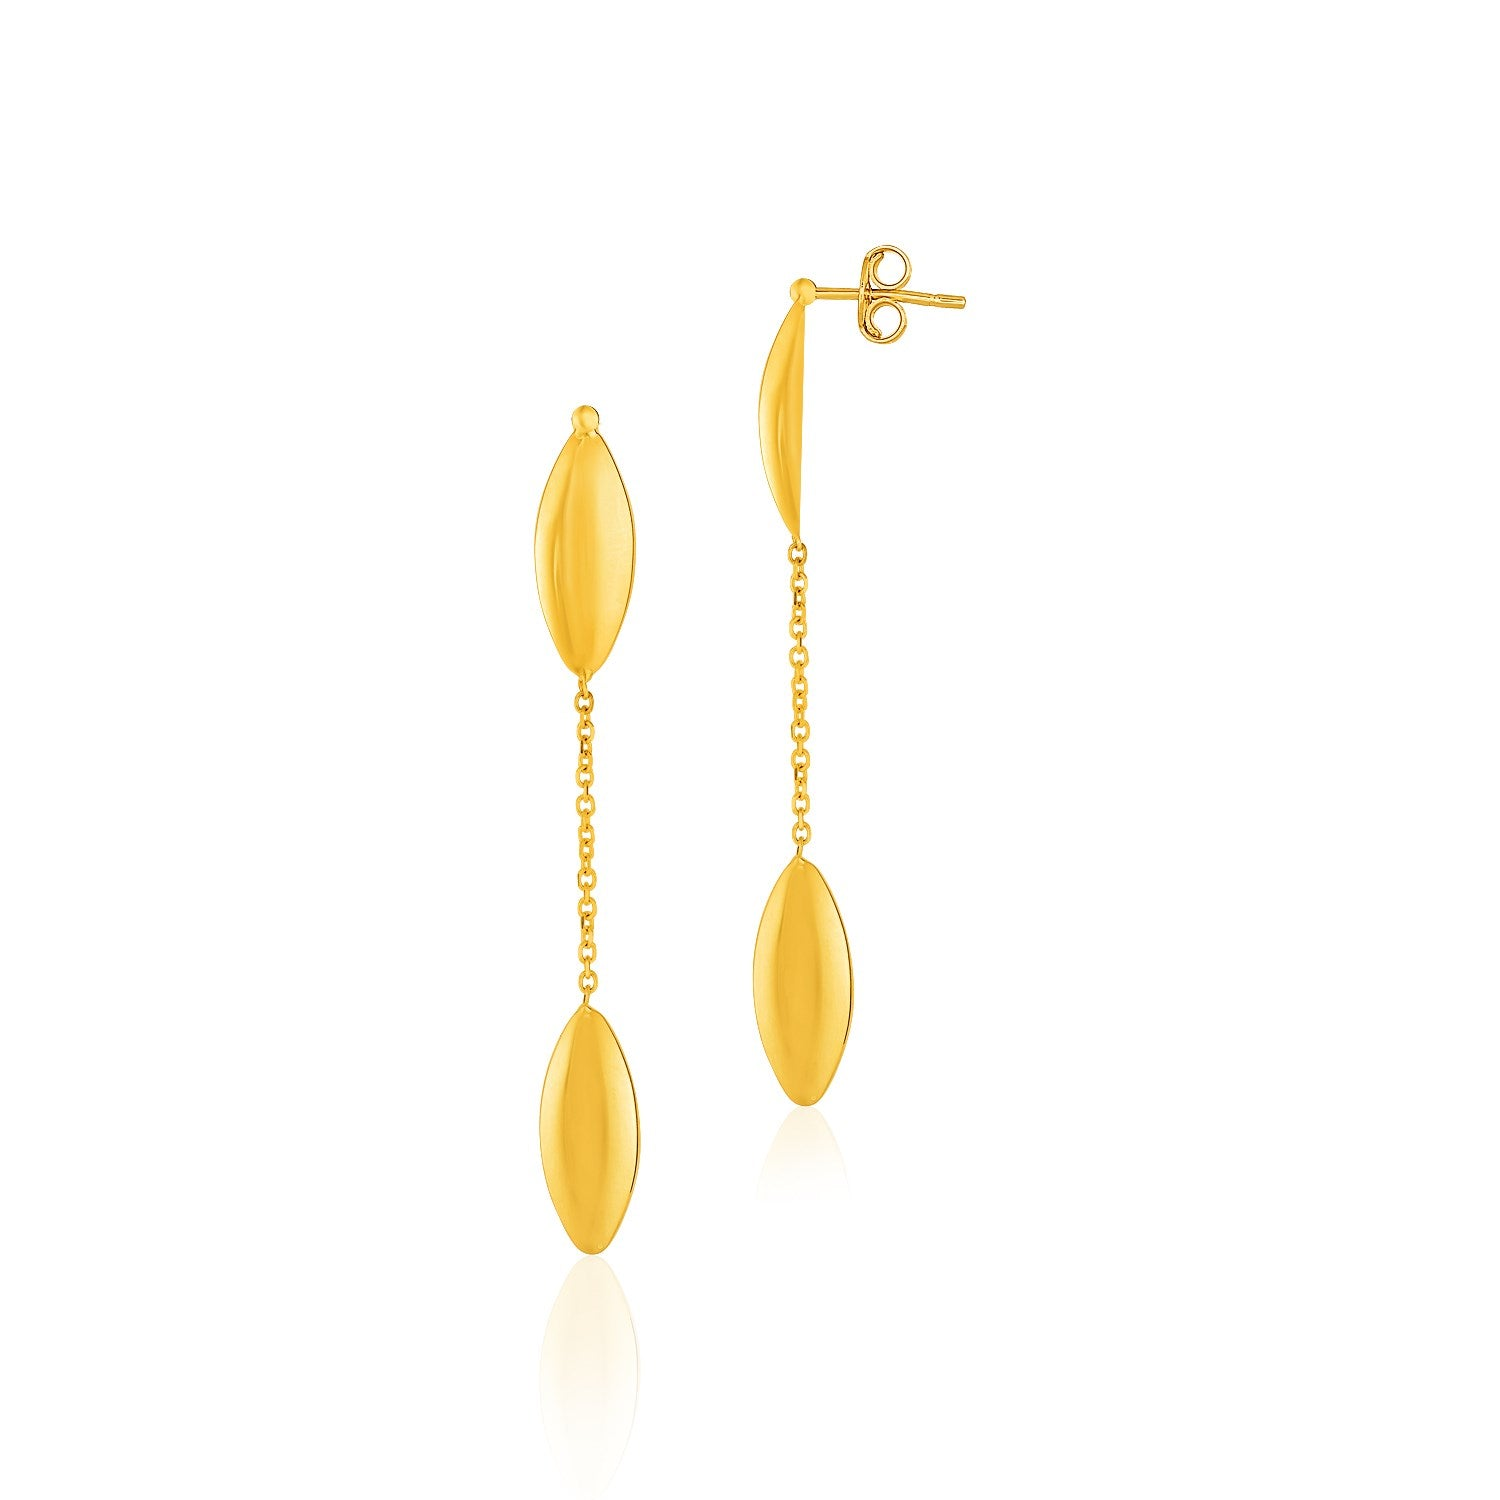 Original Modern Italian Style 14K Yellow Gold Puffed Marquise Motif Drop Post Earrings